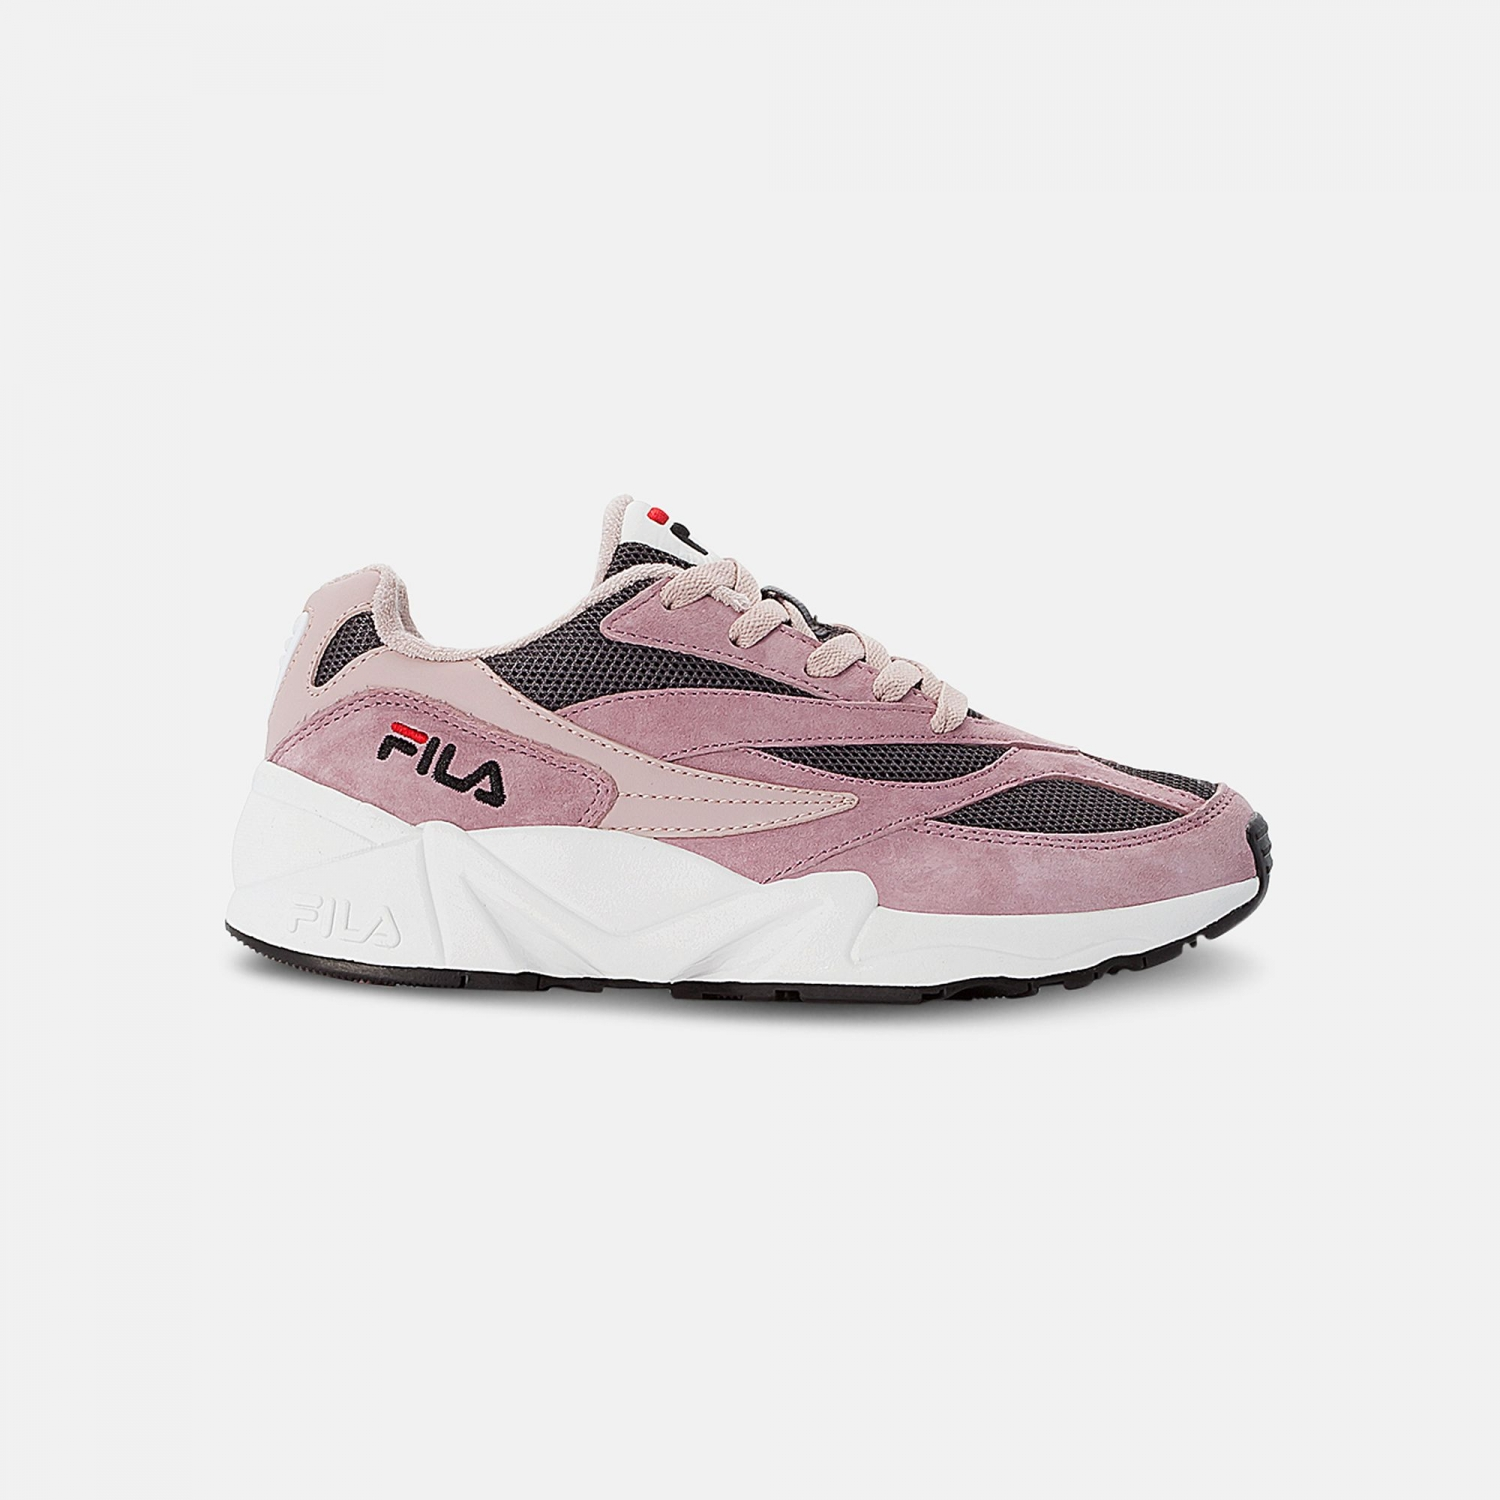 Fila V94M Low Wmn lilas-dark-shadow Bild 1